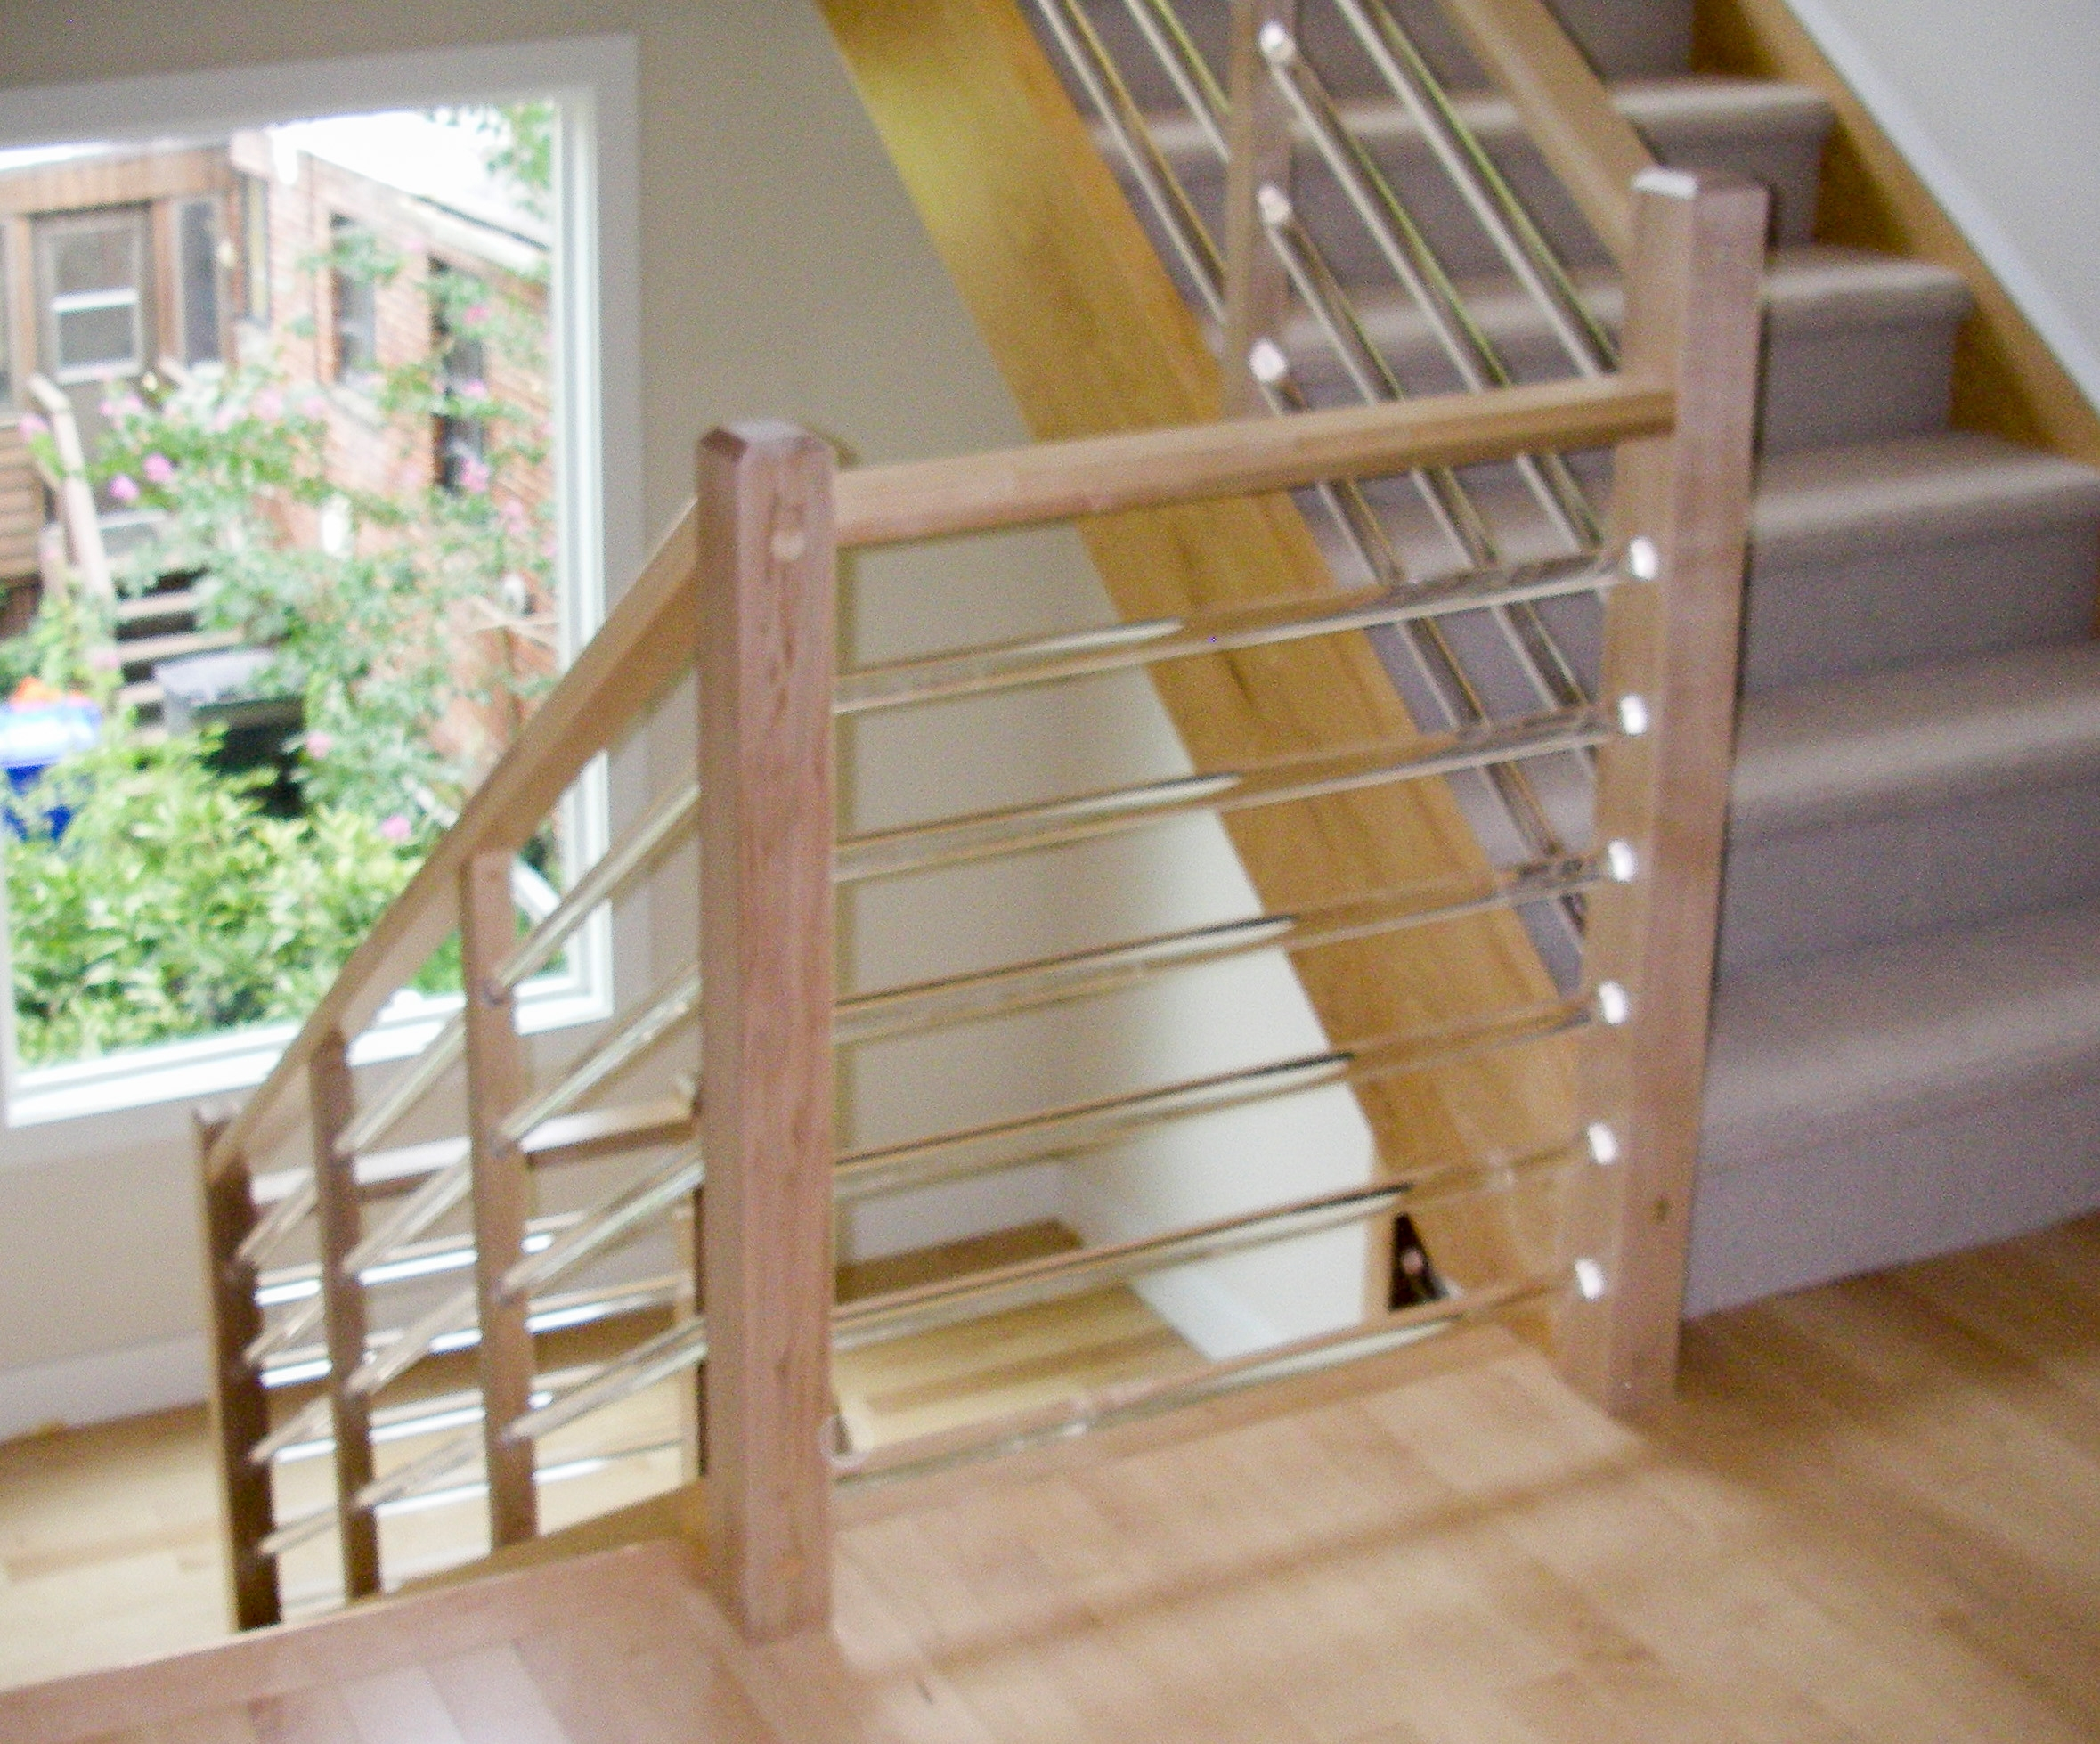 Clear Acrylic Staircase Ideas Photos Houzz   Clear Handrails For Stairs   Steel   Clear Acrylic   Wood   Riser   Metal